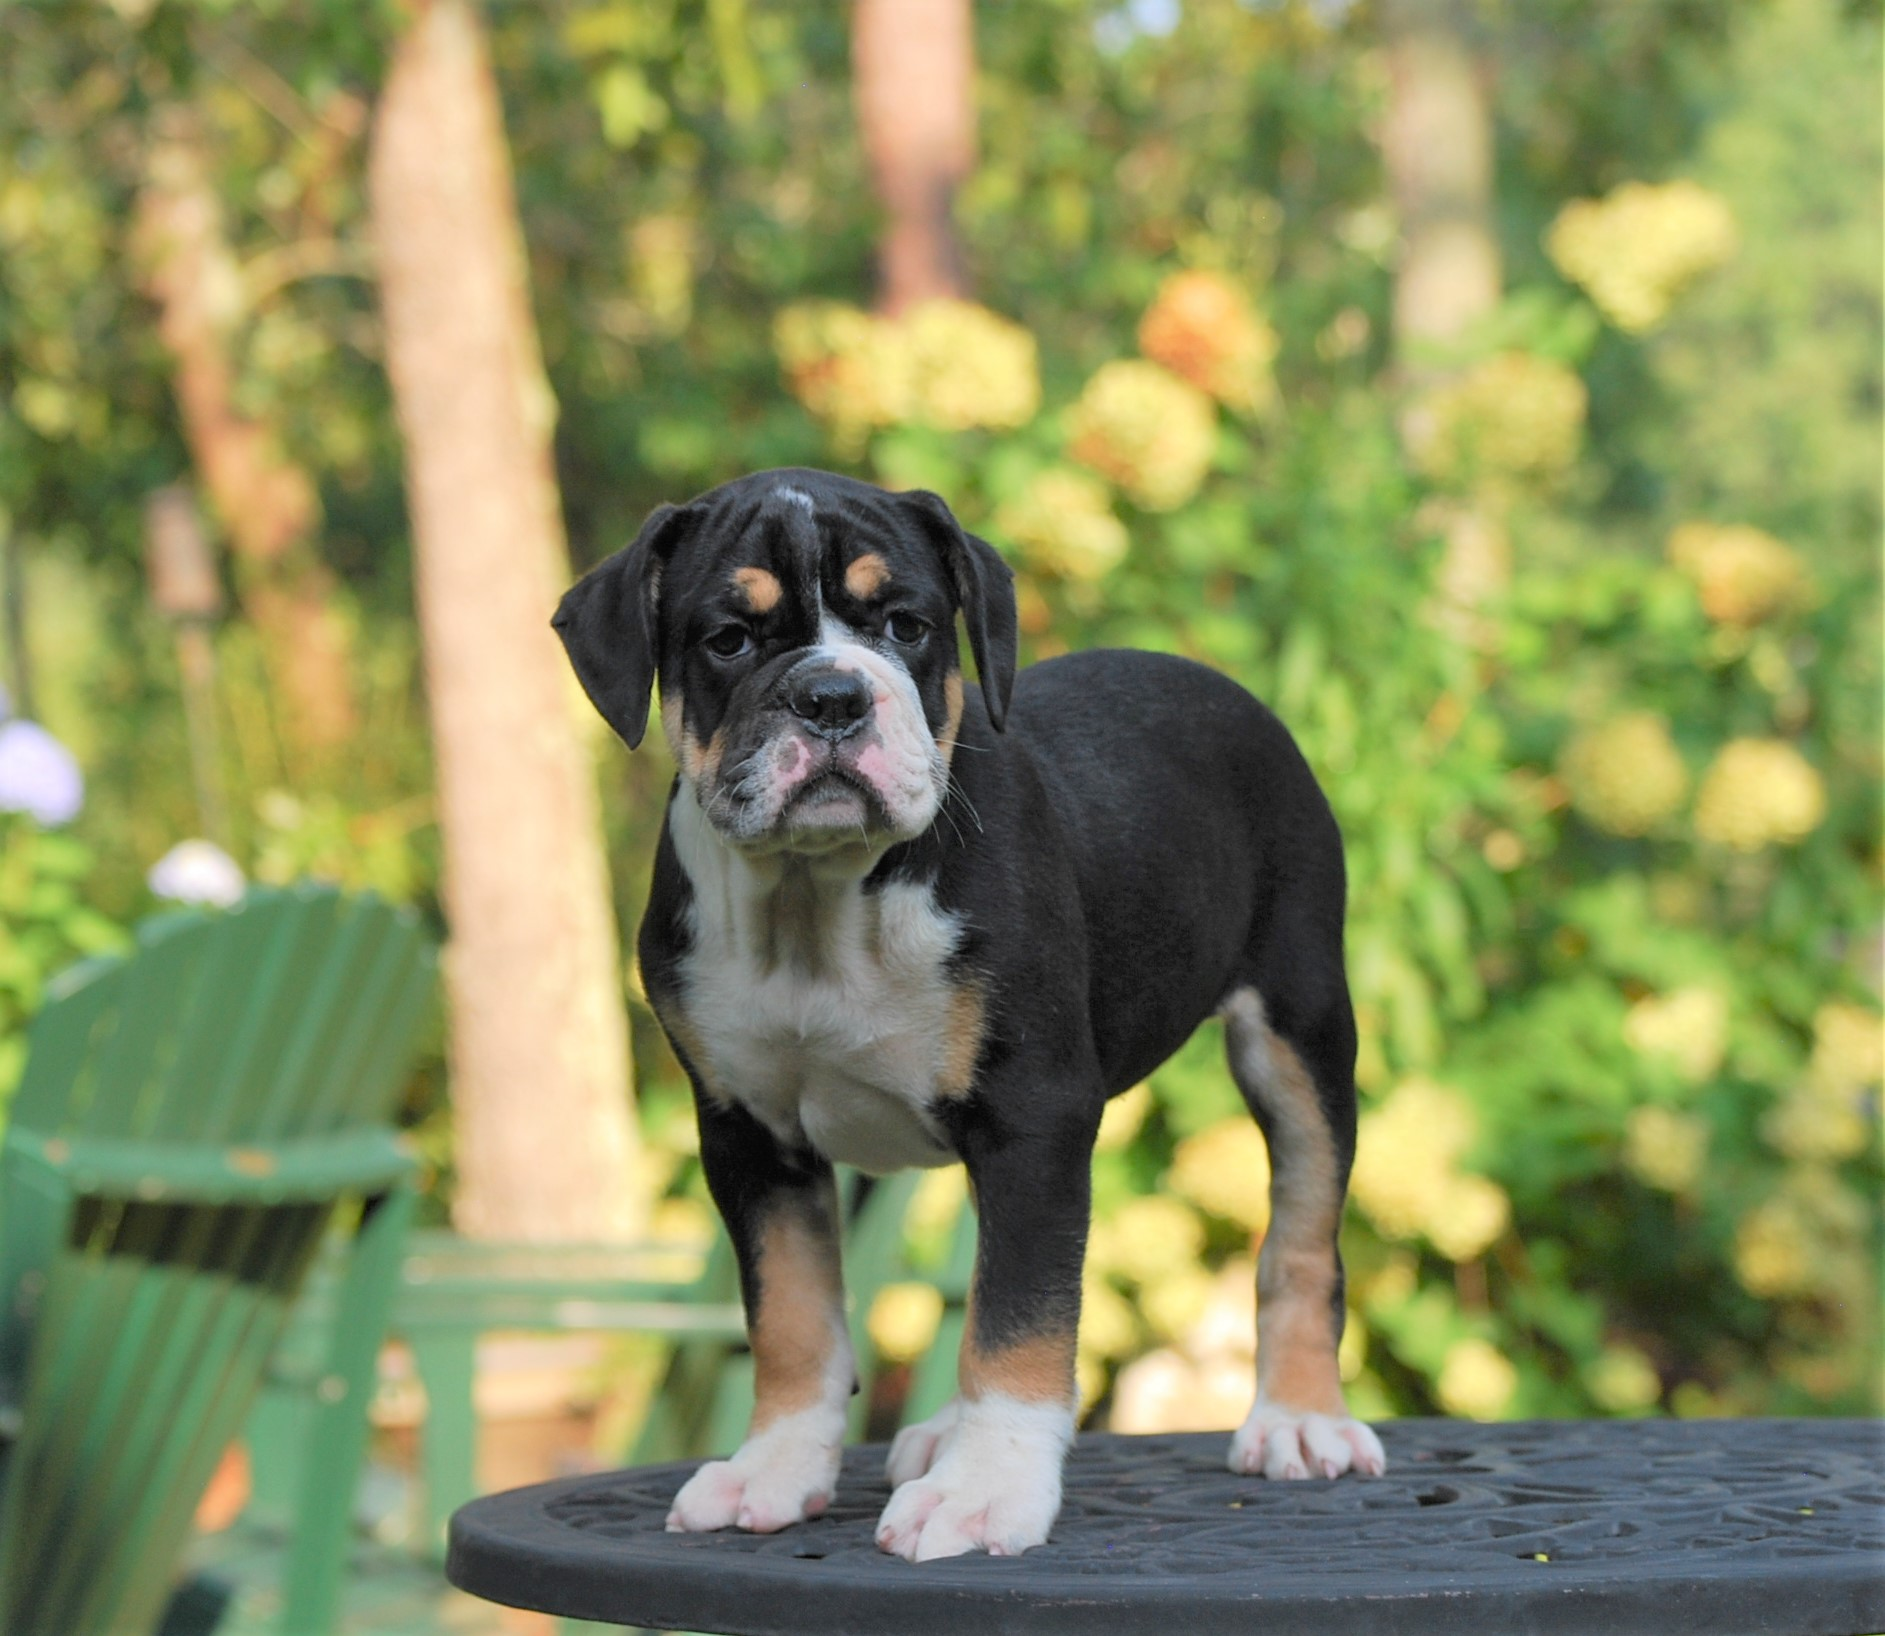 Raven (Sold) Olde English Bulldogge Puppy For Sale | Photo 5